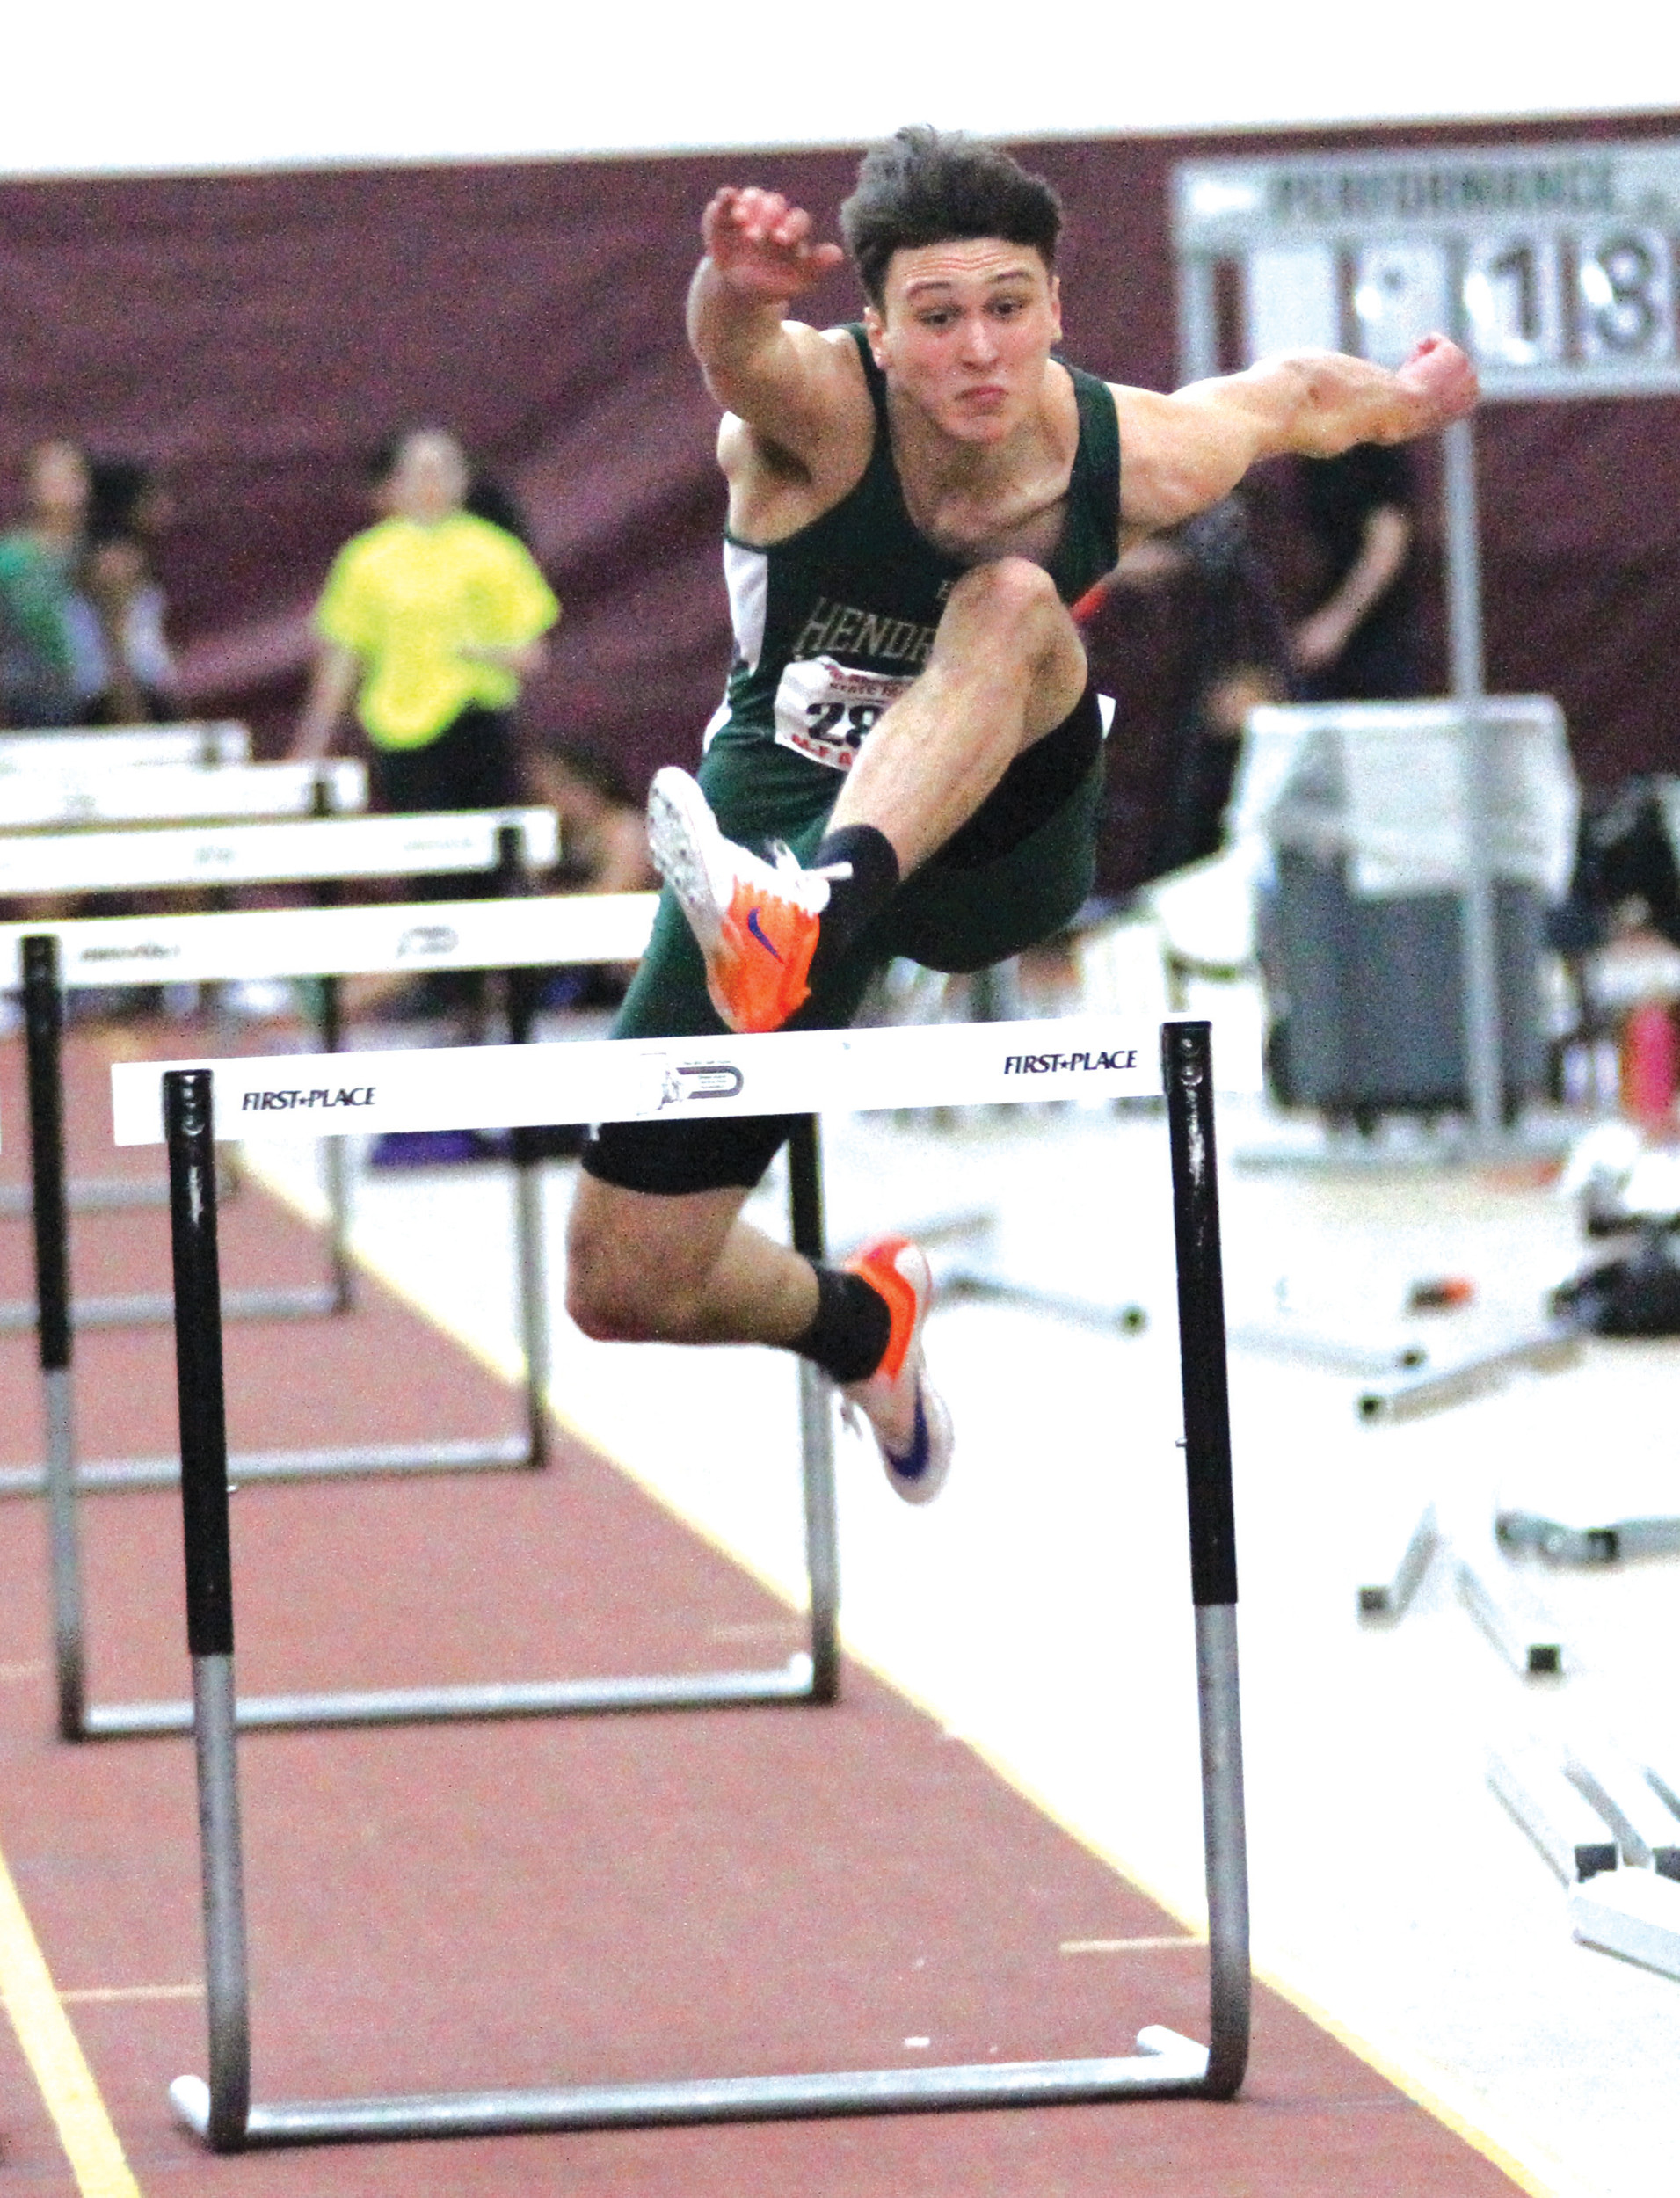 OVER THE TOP: Ethan Famiano showed his prowess in the 55-meter hurdles in New Hampshire, claiming third place.